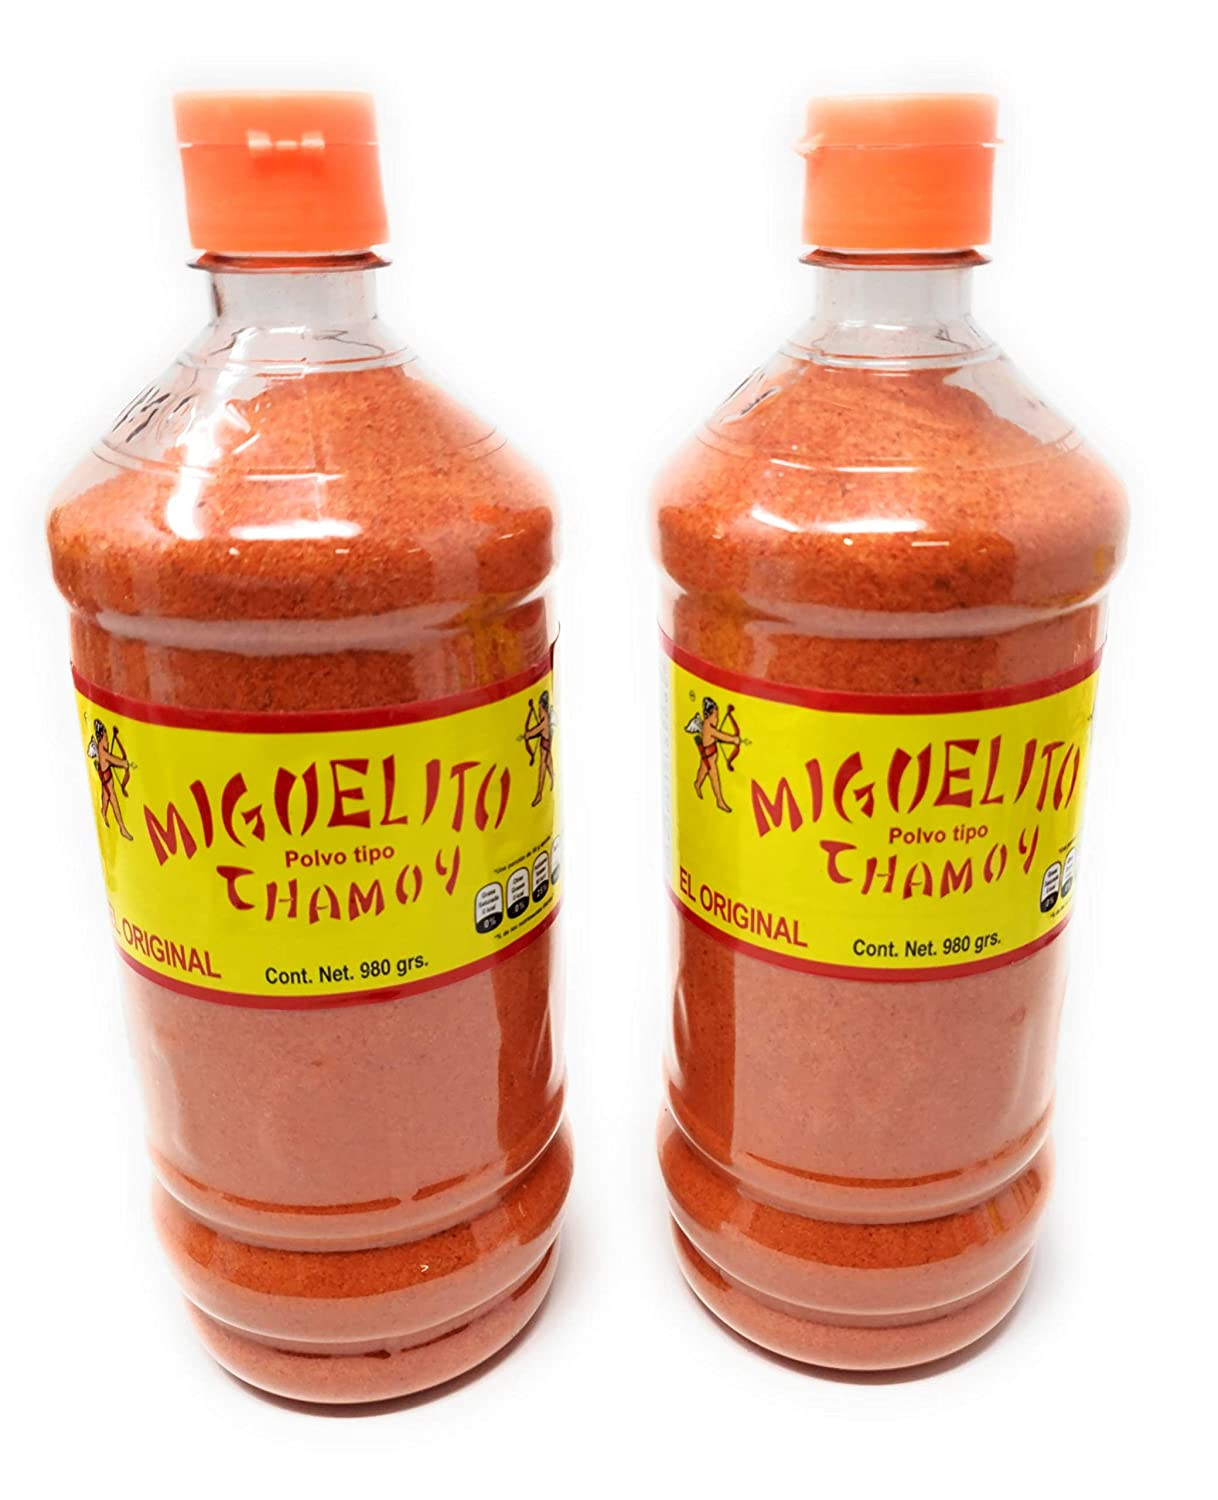 2 X Miguelito Chamoy Chilito Chili Powder cheap Mexican Polvo Candy Opening large release sale